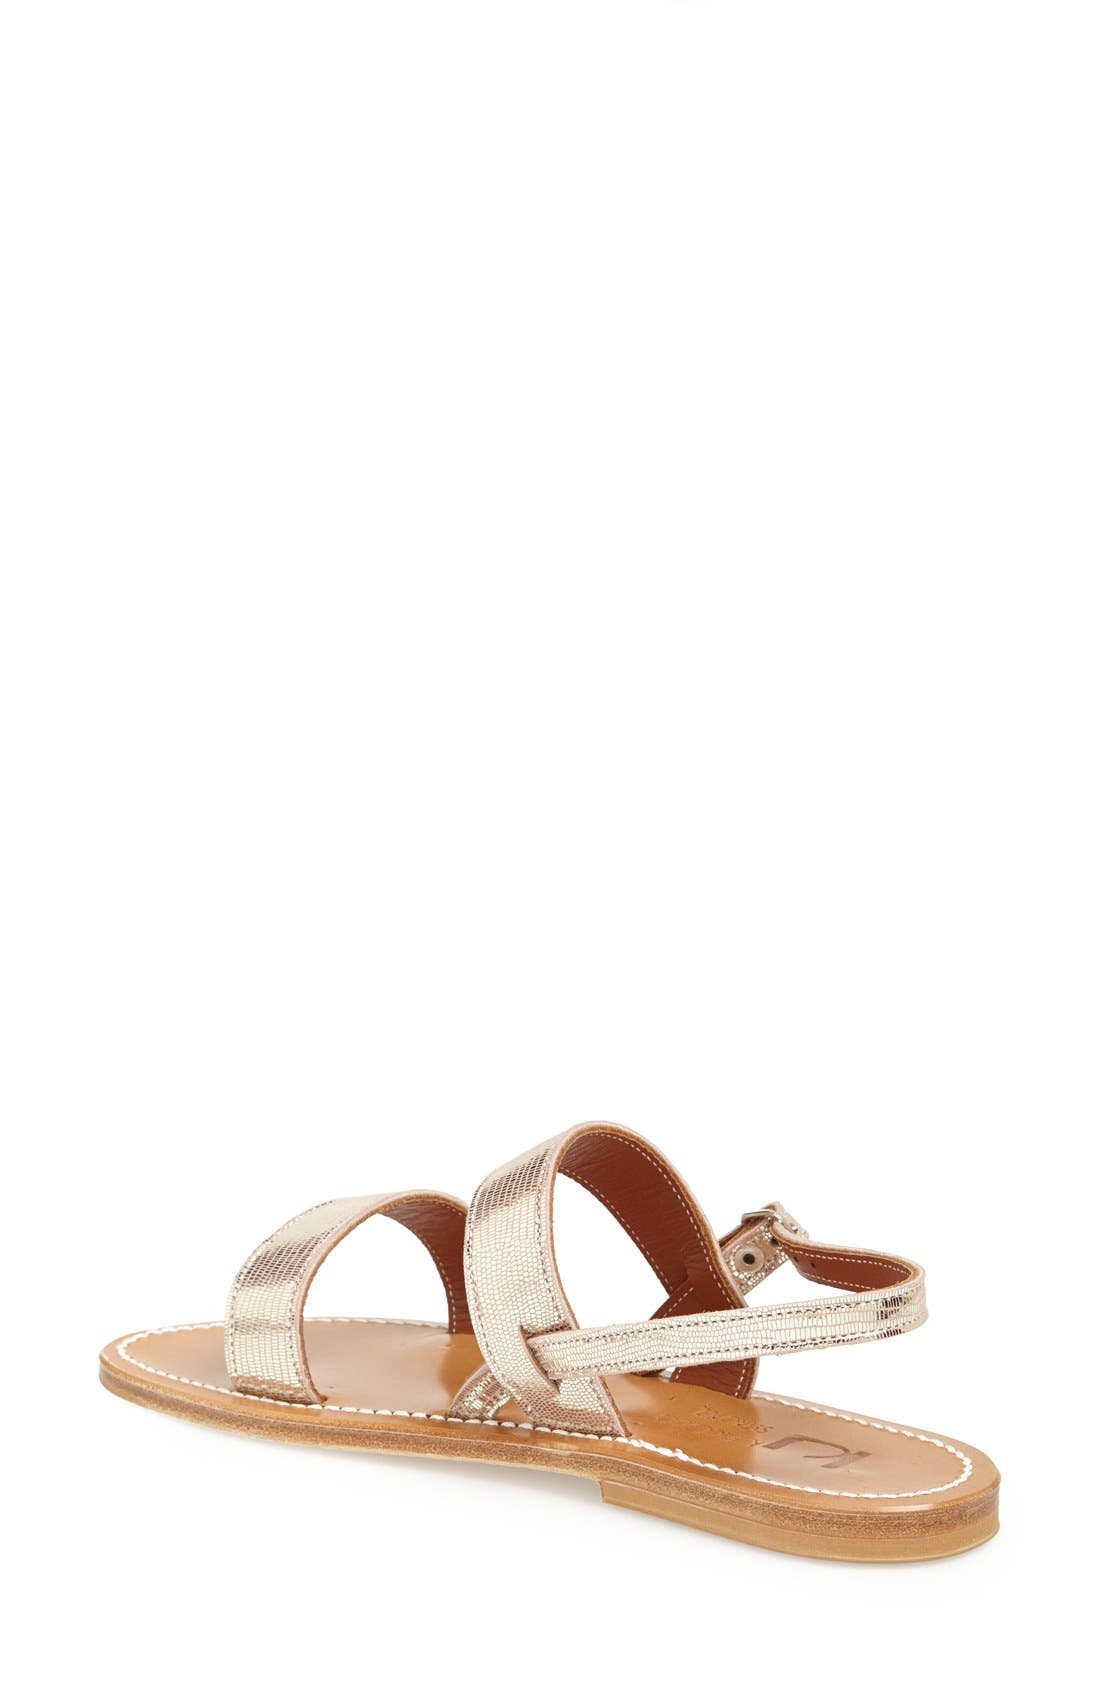 Alternate Image 2  - K.Jacques St. Tropez 'Barigoule' Sandal (Women)